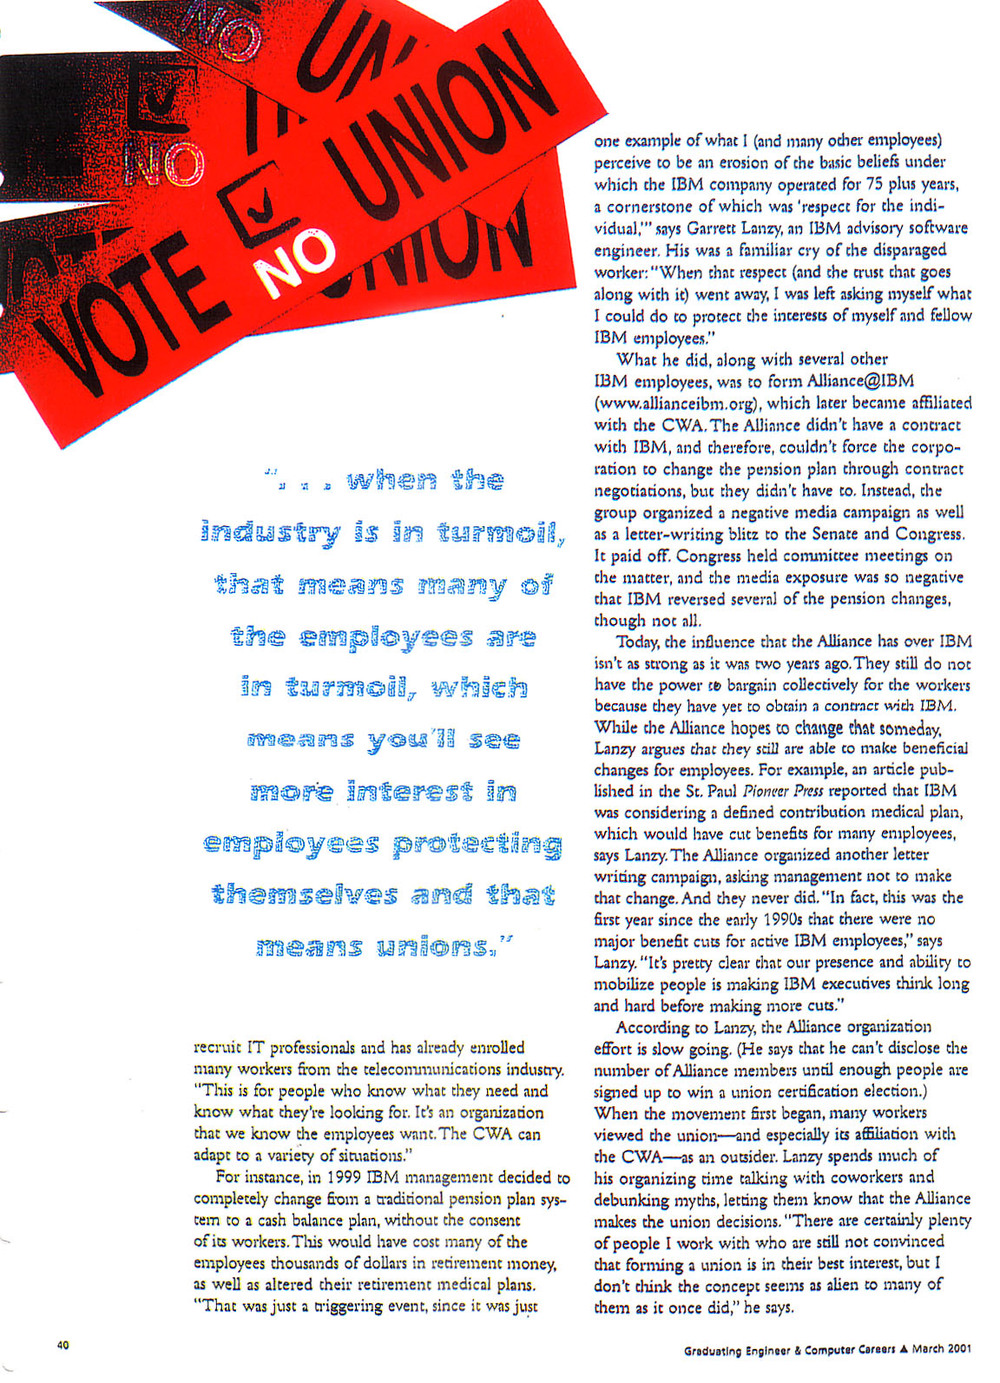 graduating engineer & computer careers-march 2001-high-tech labor pains page 5.jpg